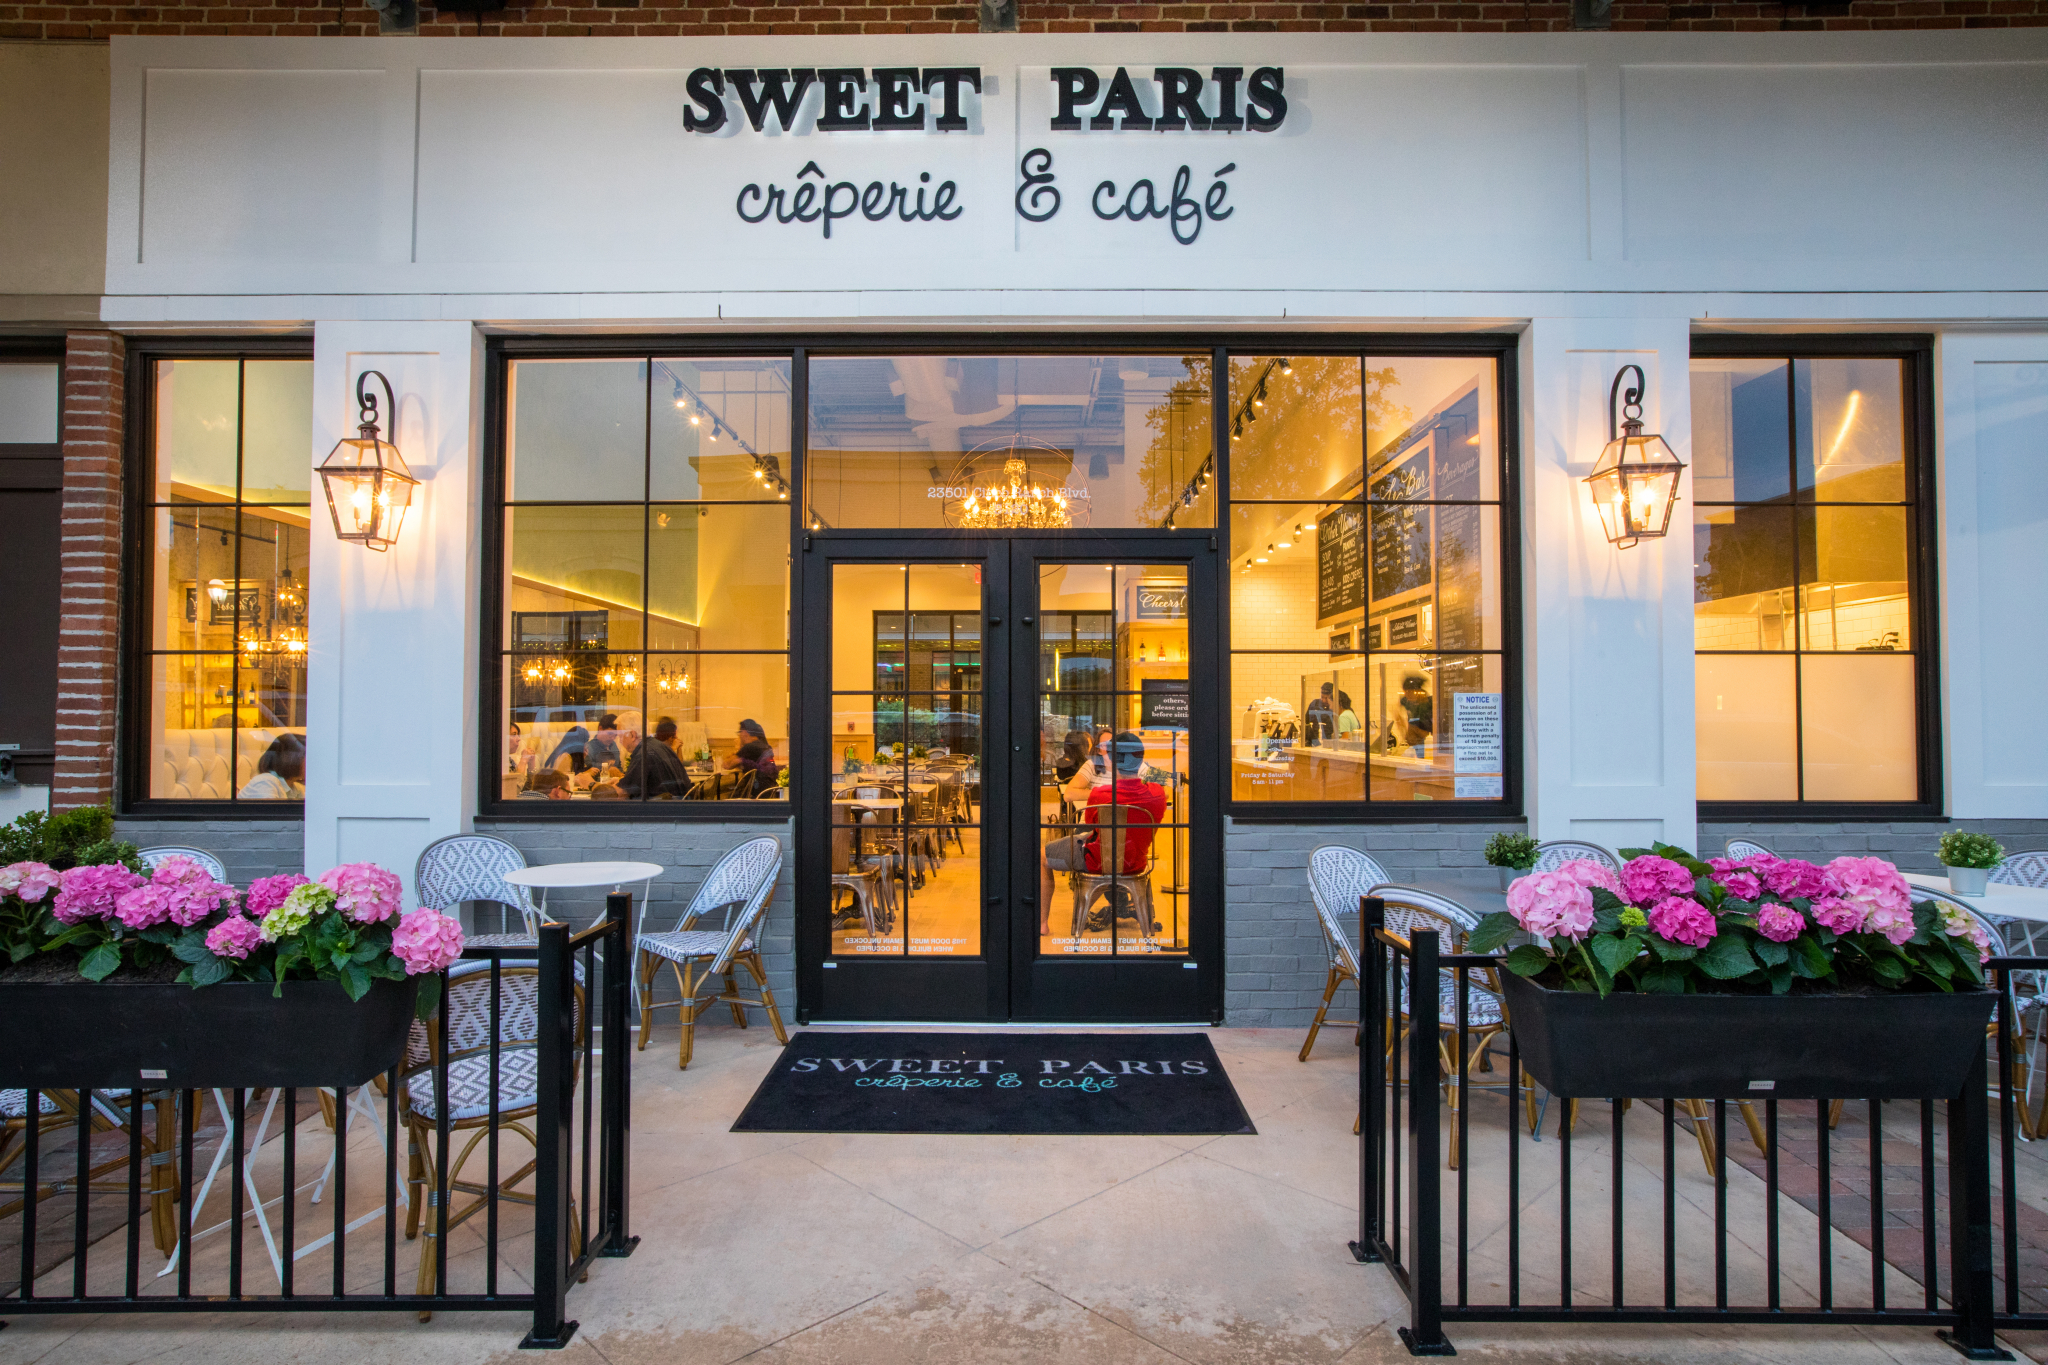 Sweet Home Paris Sweet Paris Now Open In Katy - Houston Chronicle